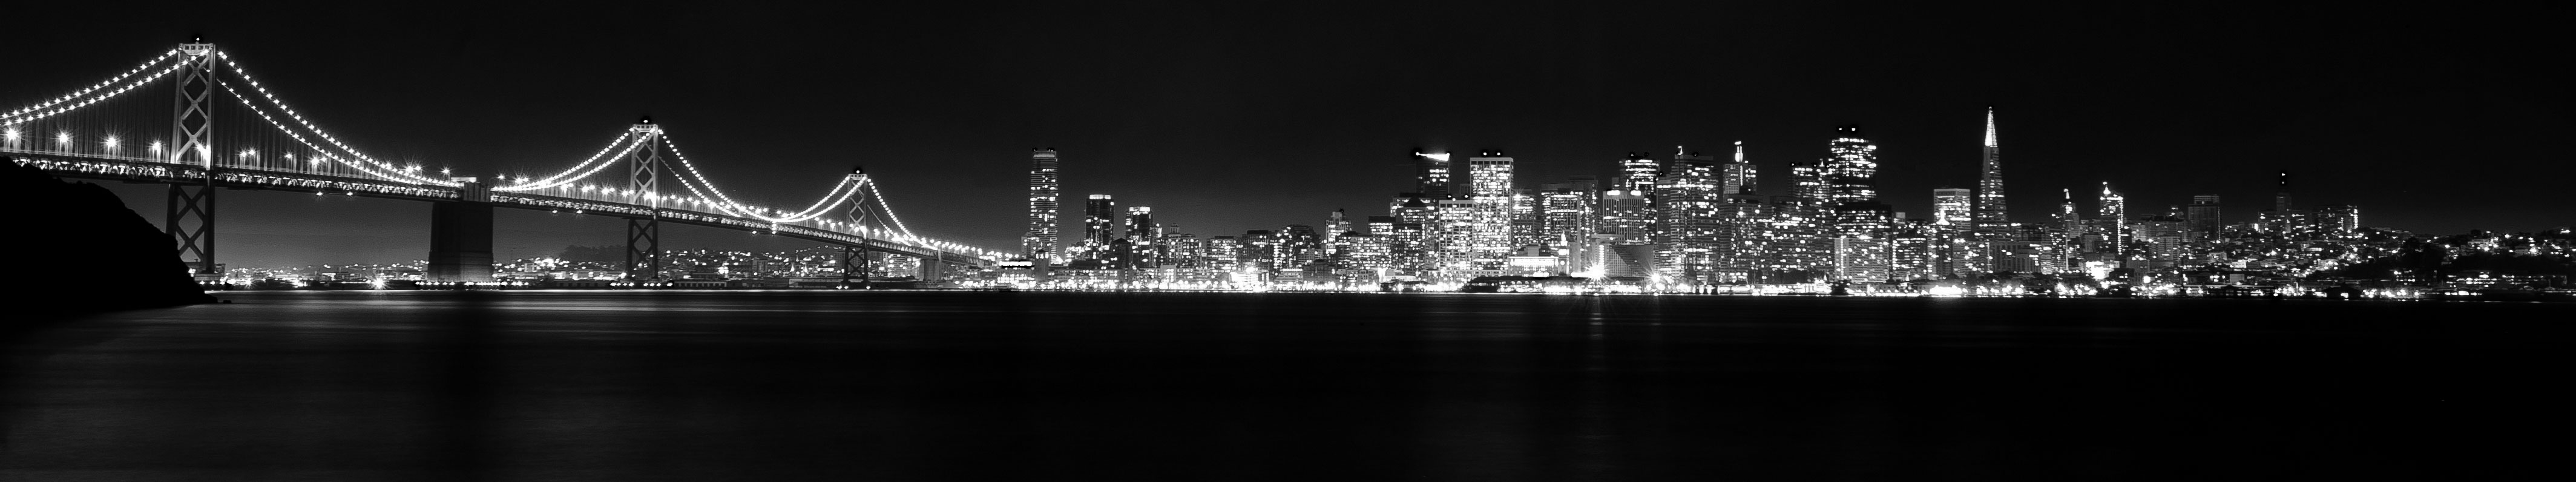 San-Francisco-B&W-Night